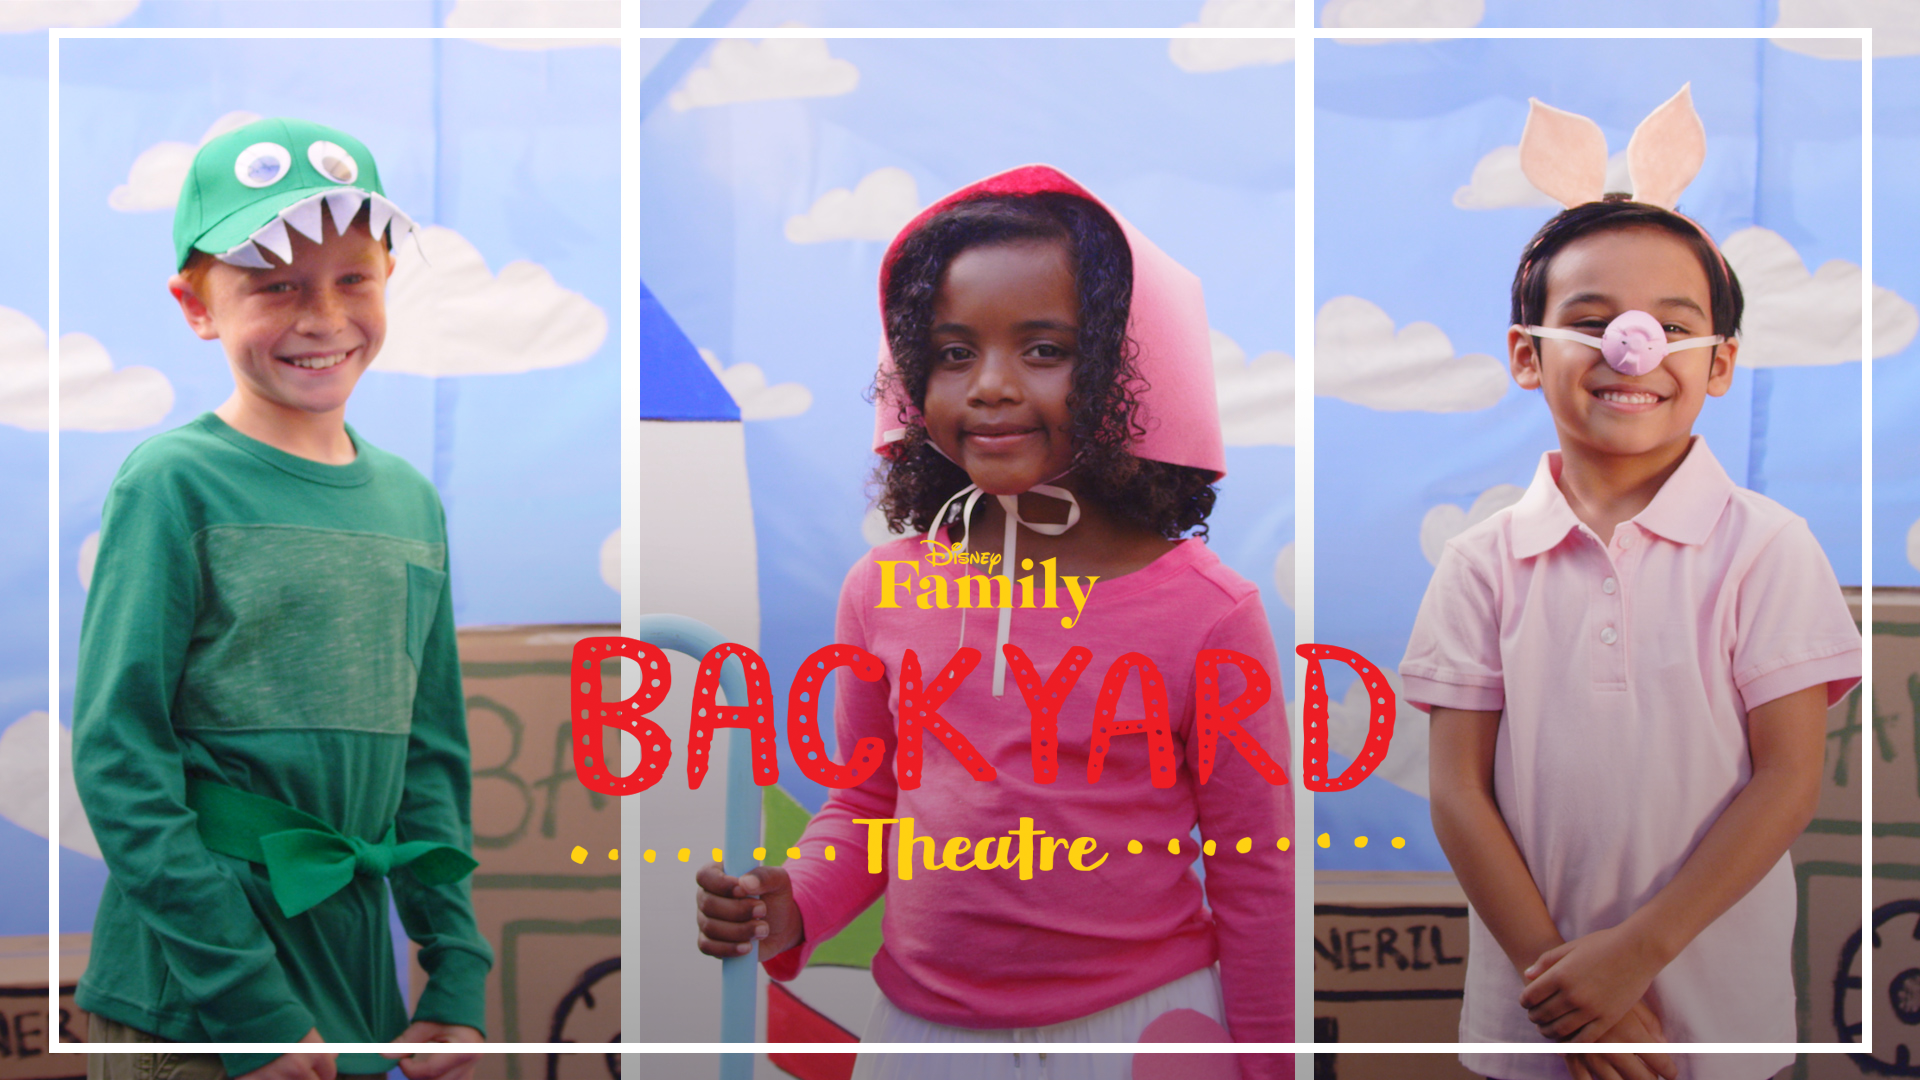 Backyard Theatre: Toy Story Costumes DIY | Disney Family